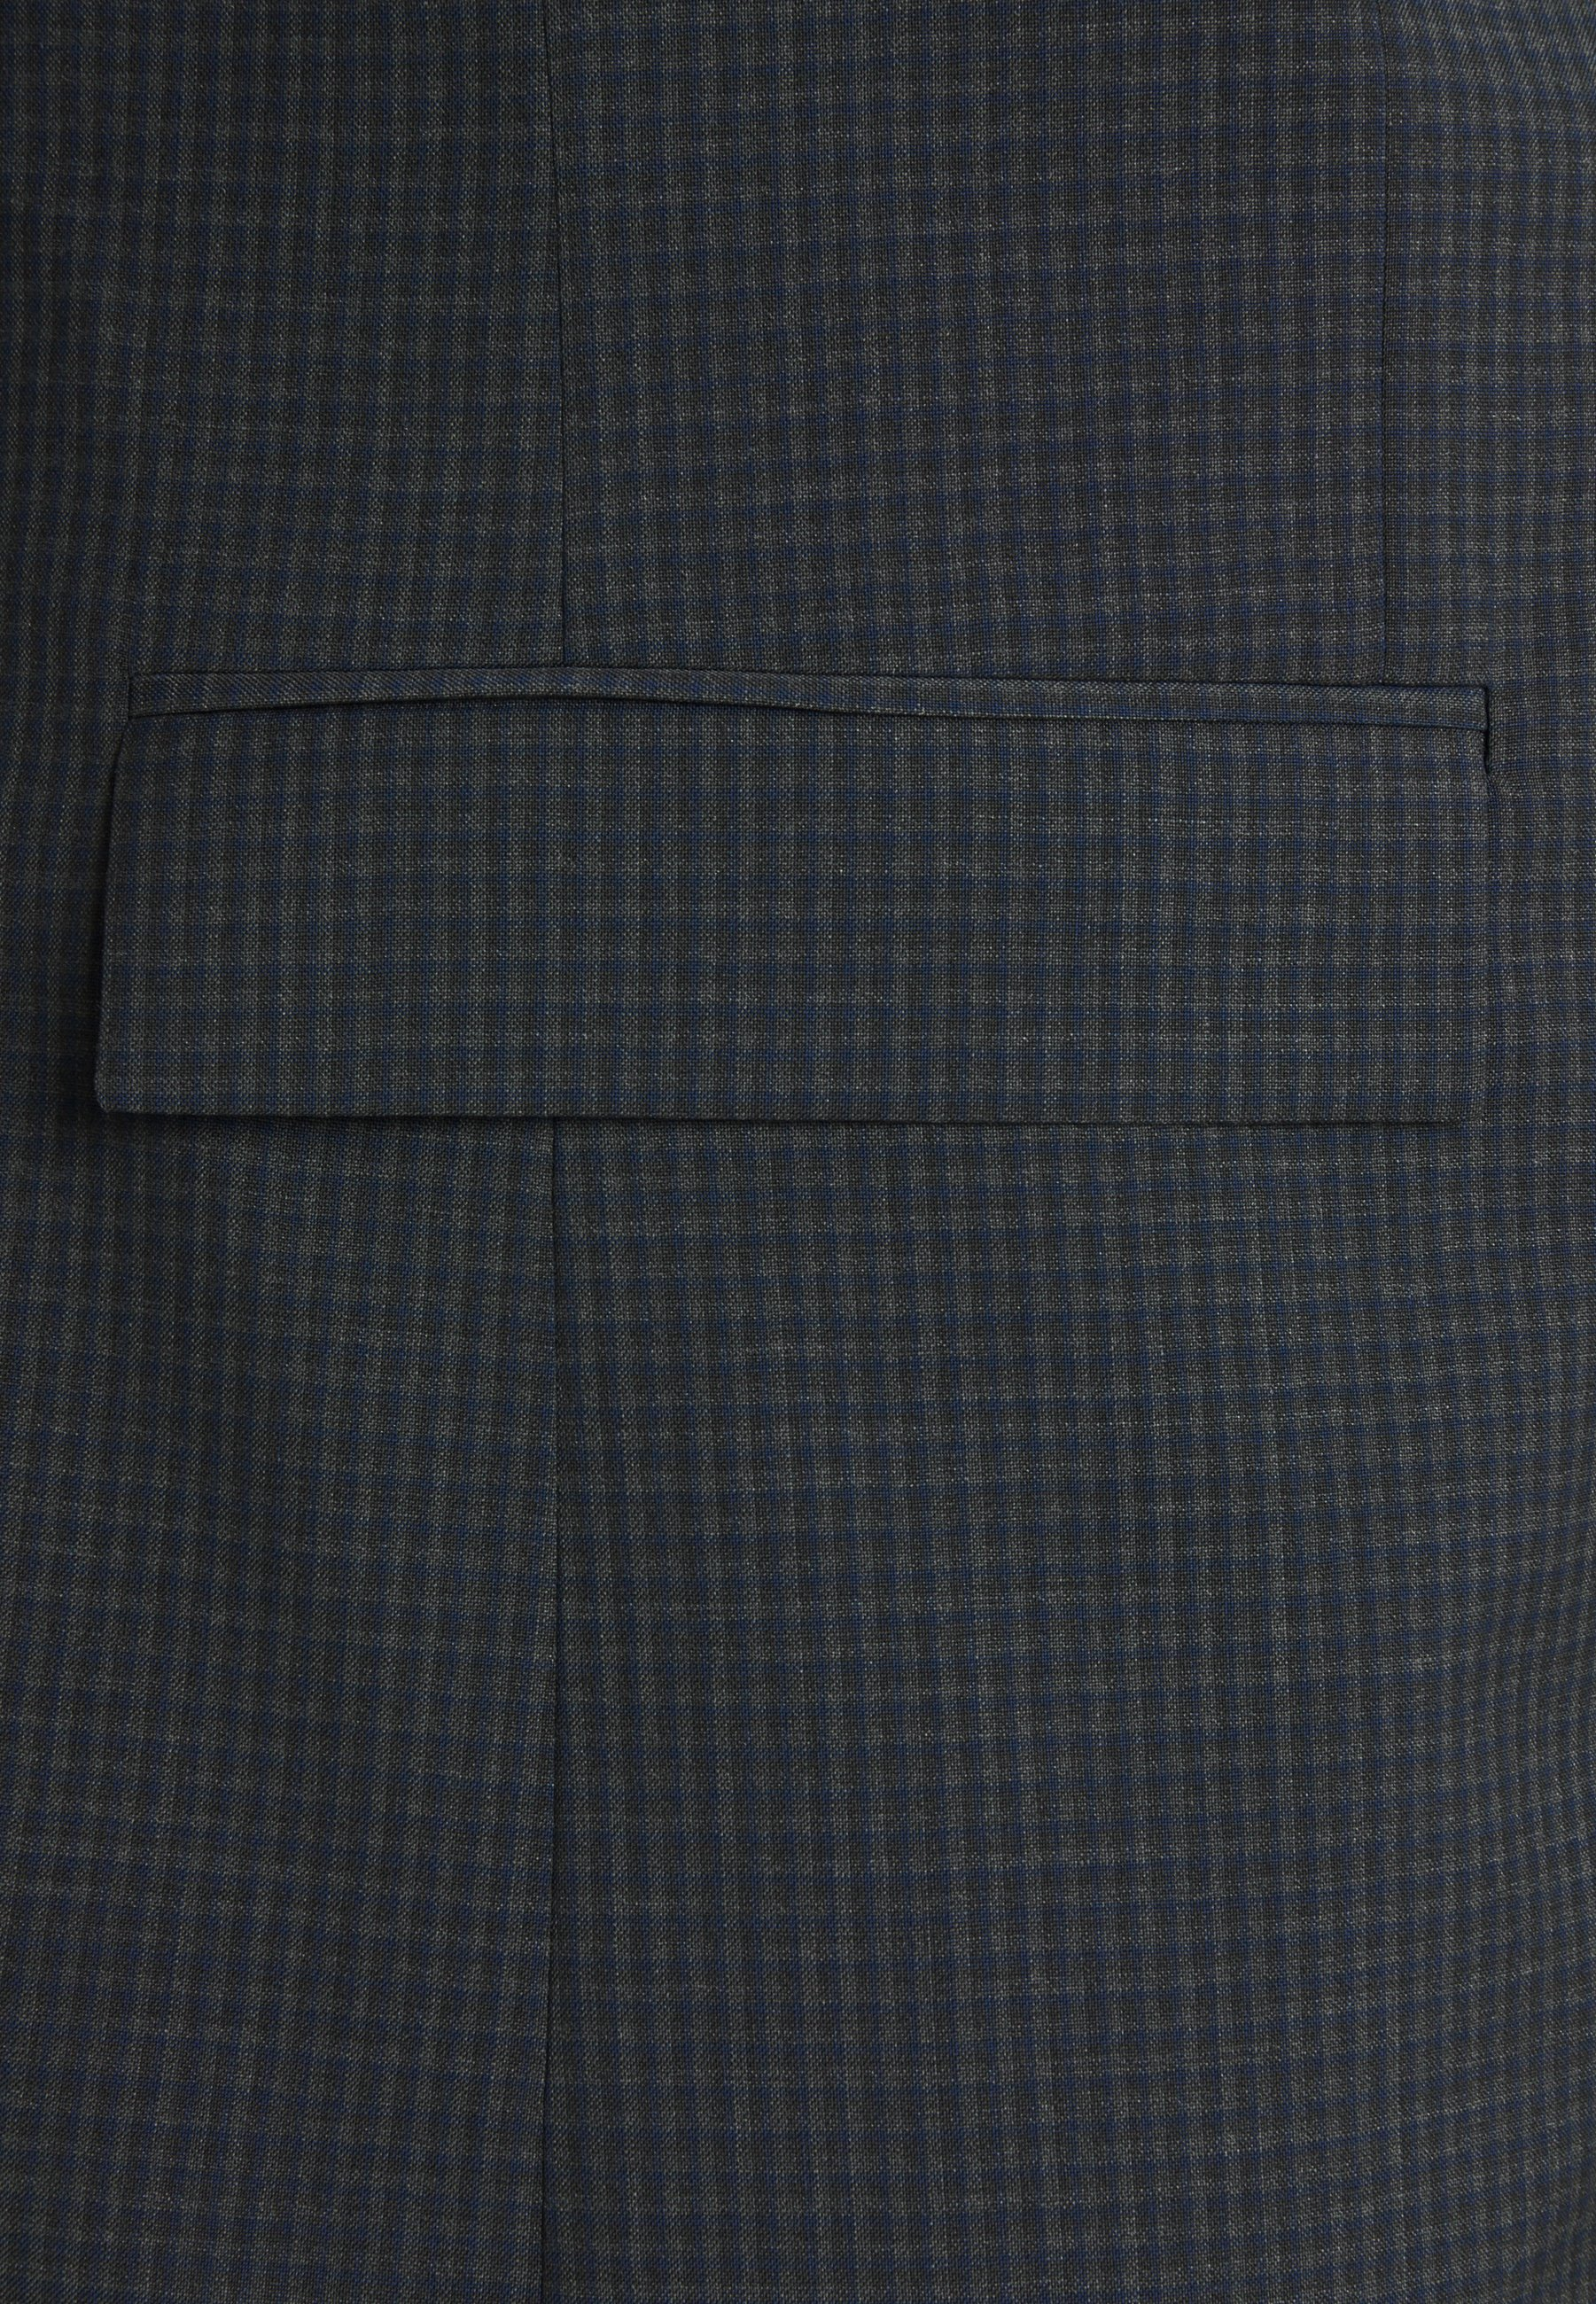 Homme SHADOW GRID EXTRAFINE SUIT - Costume